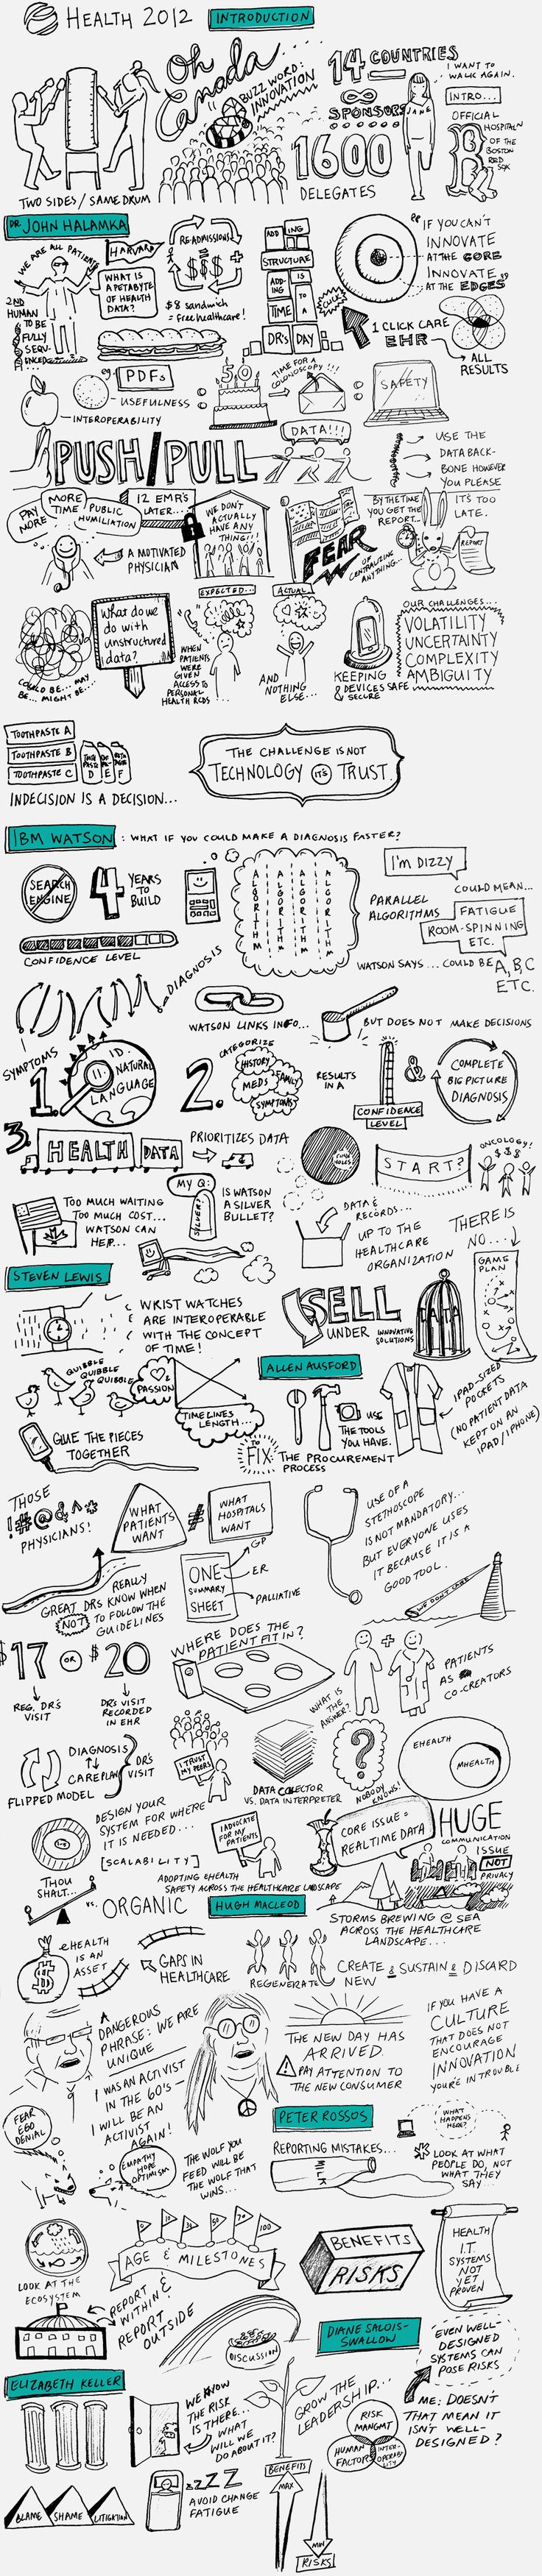 ☤ MD ☞☆☆☆ eHealth 2012: Day 1 Sketch Notes. Very nicely done Sketchnotes from Cassie McDaniel.